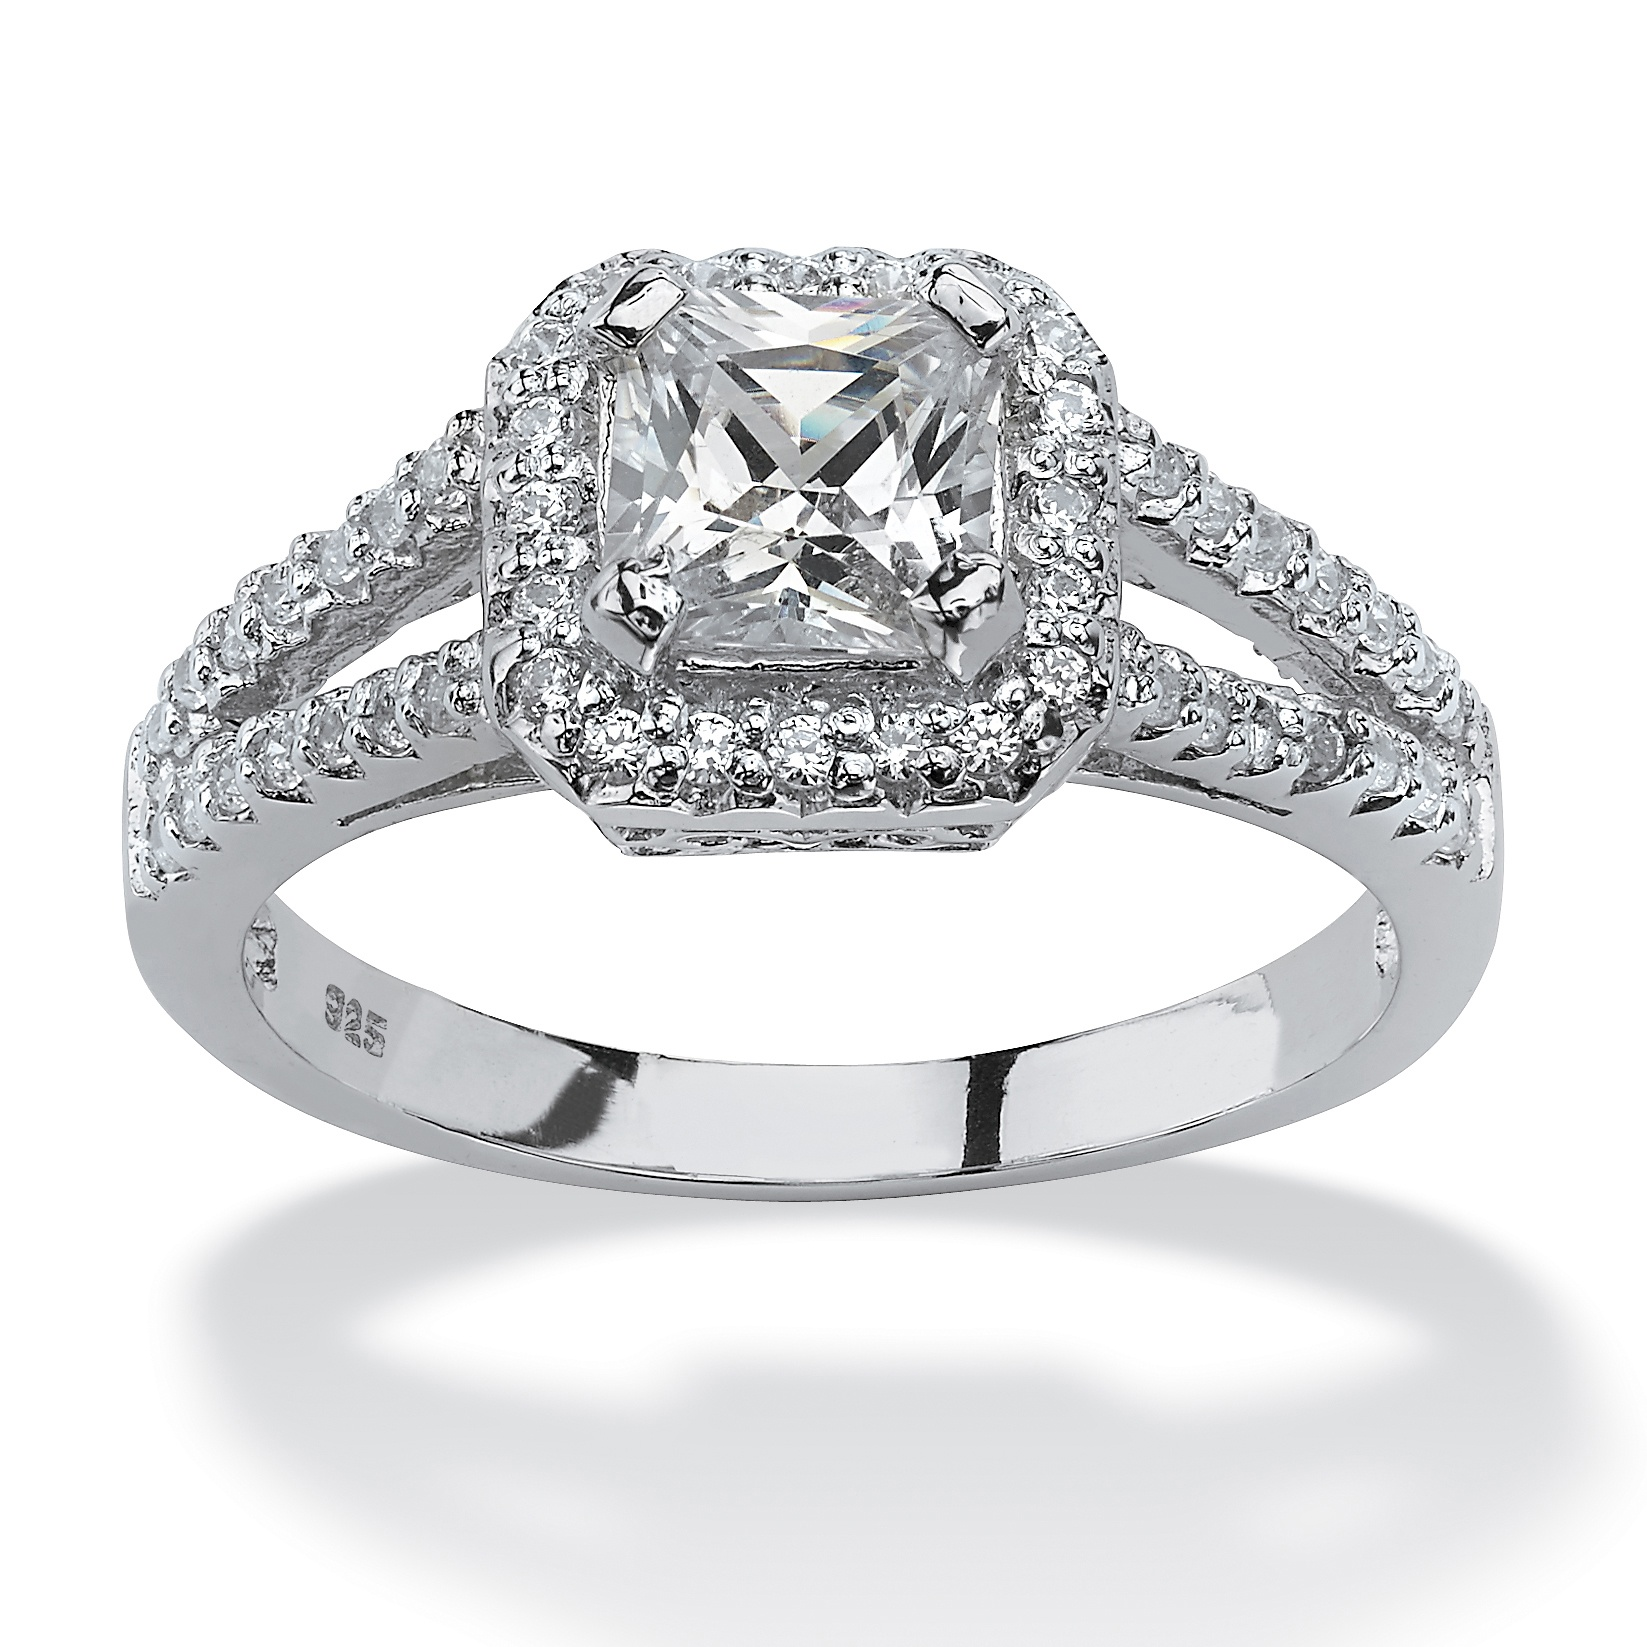 Engagement Rings Palm Beach Jewelry